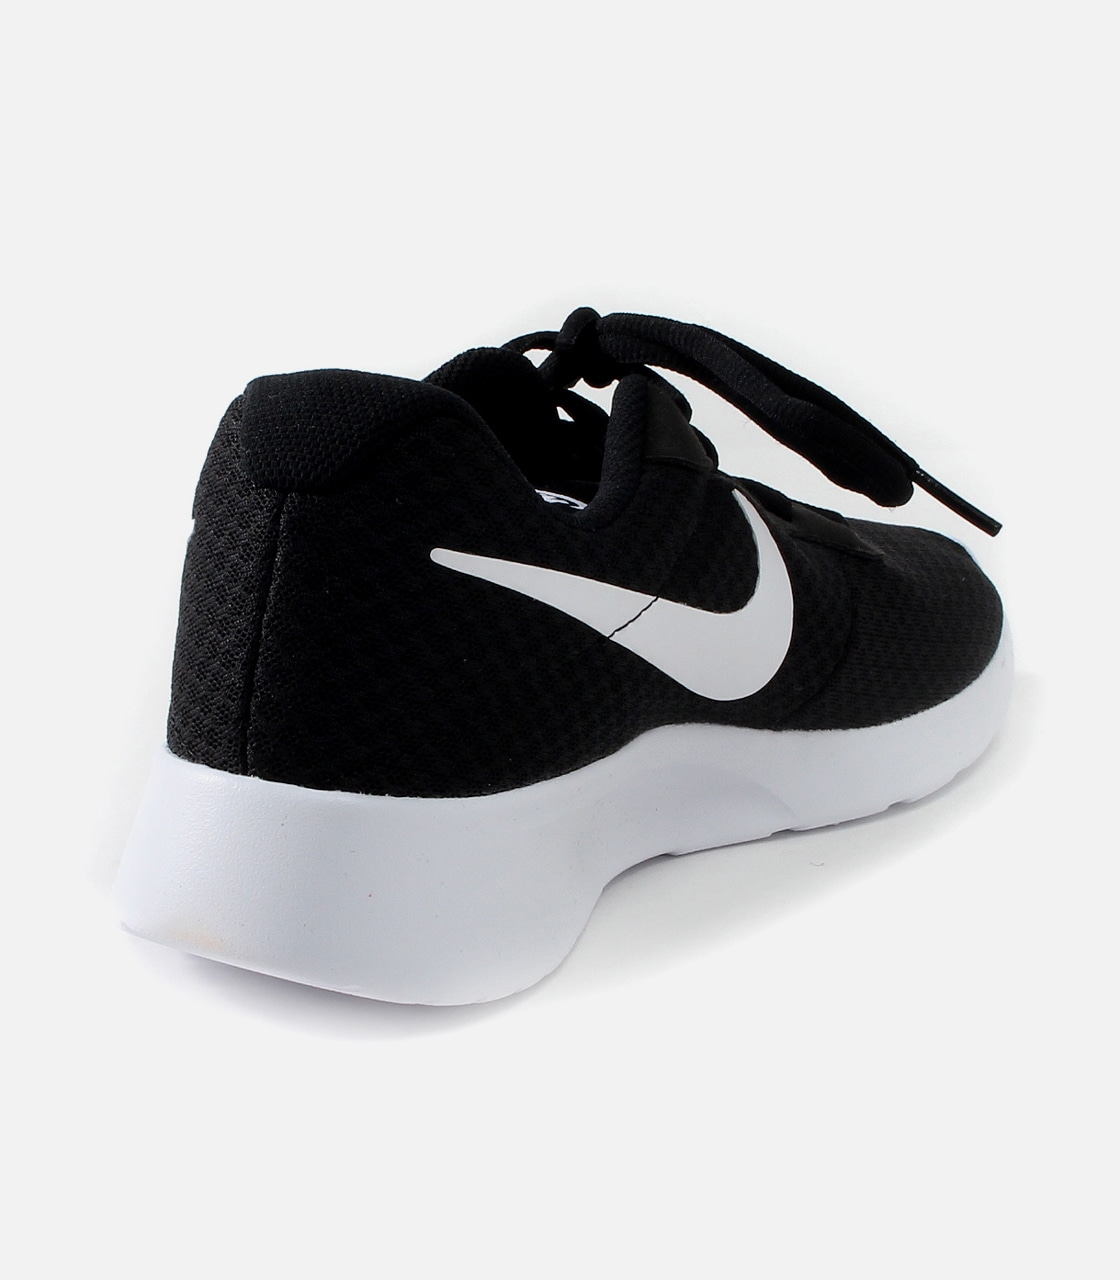 【AZUL BY MOUSSY】NIKE TANJUN 詳細画像 BLK 3